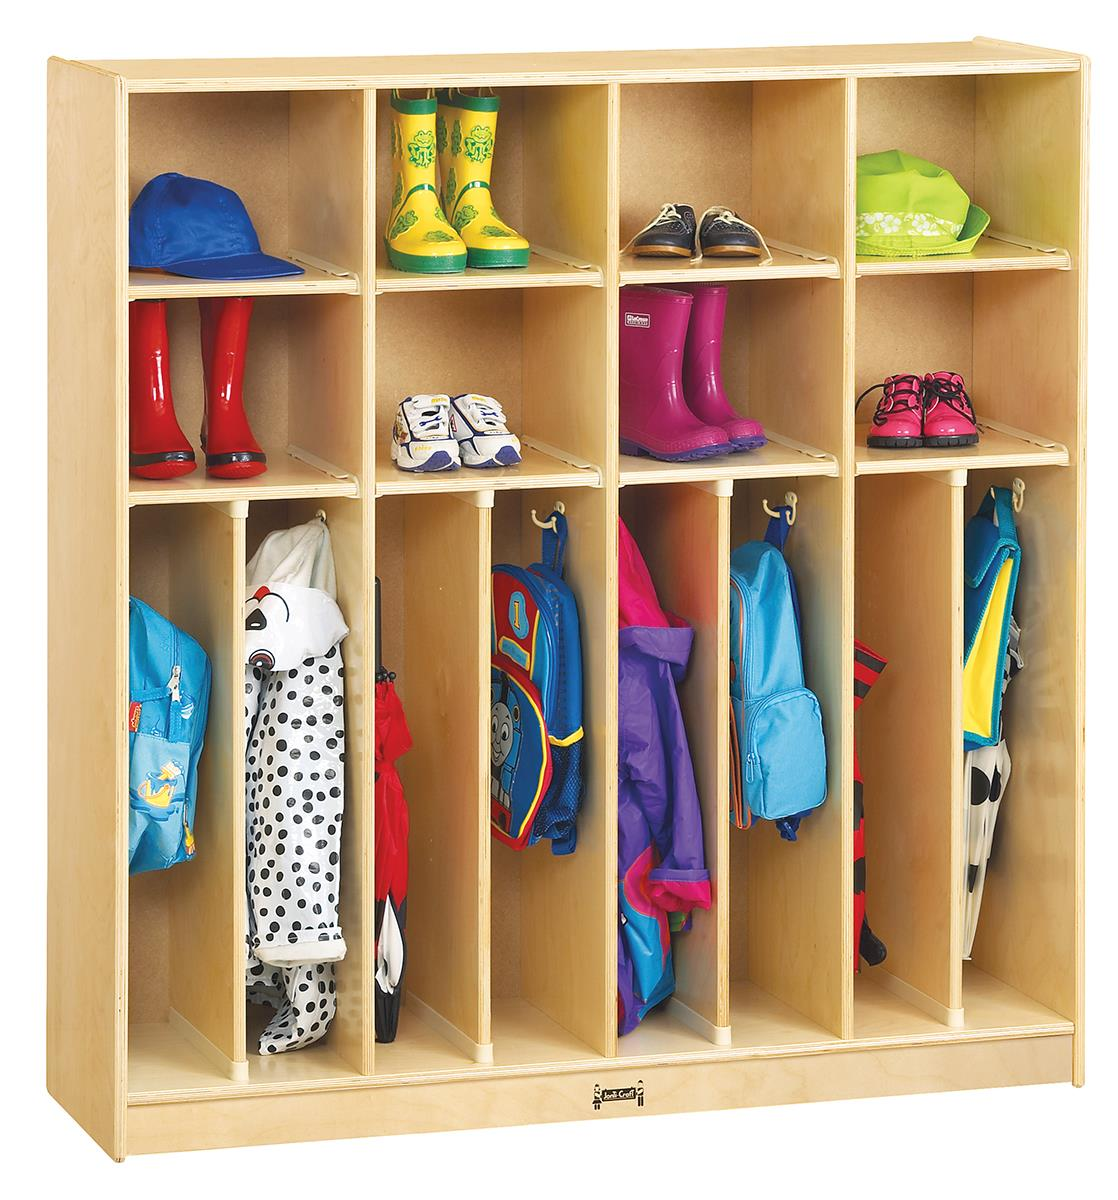 Baby cribs for daycare centers - Open Faced Lockers For Daycare Centers